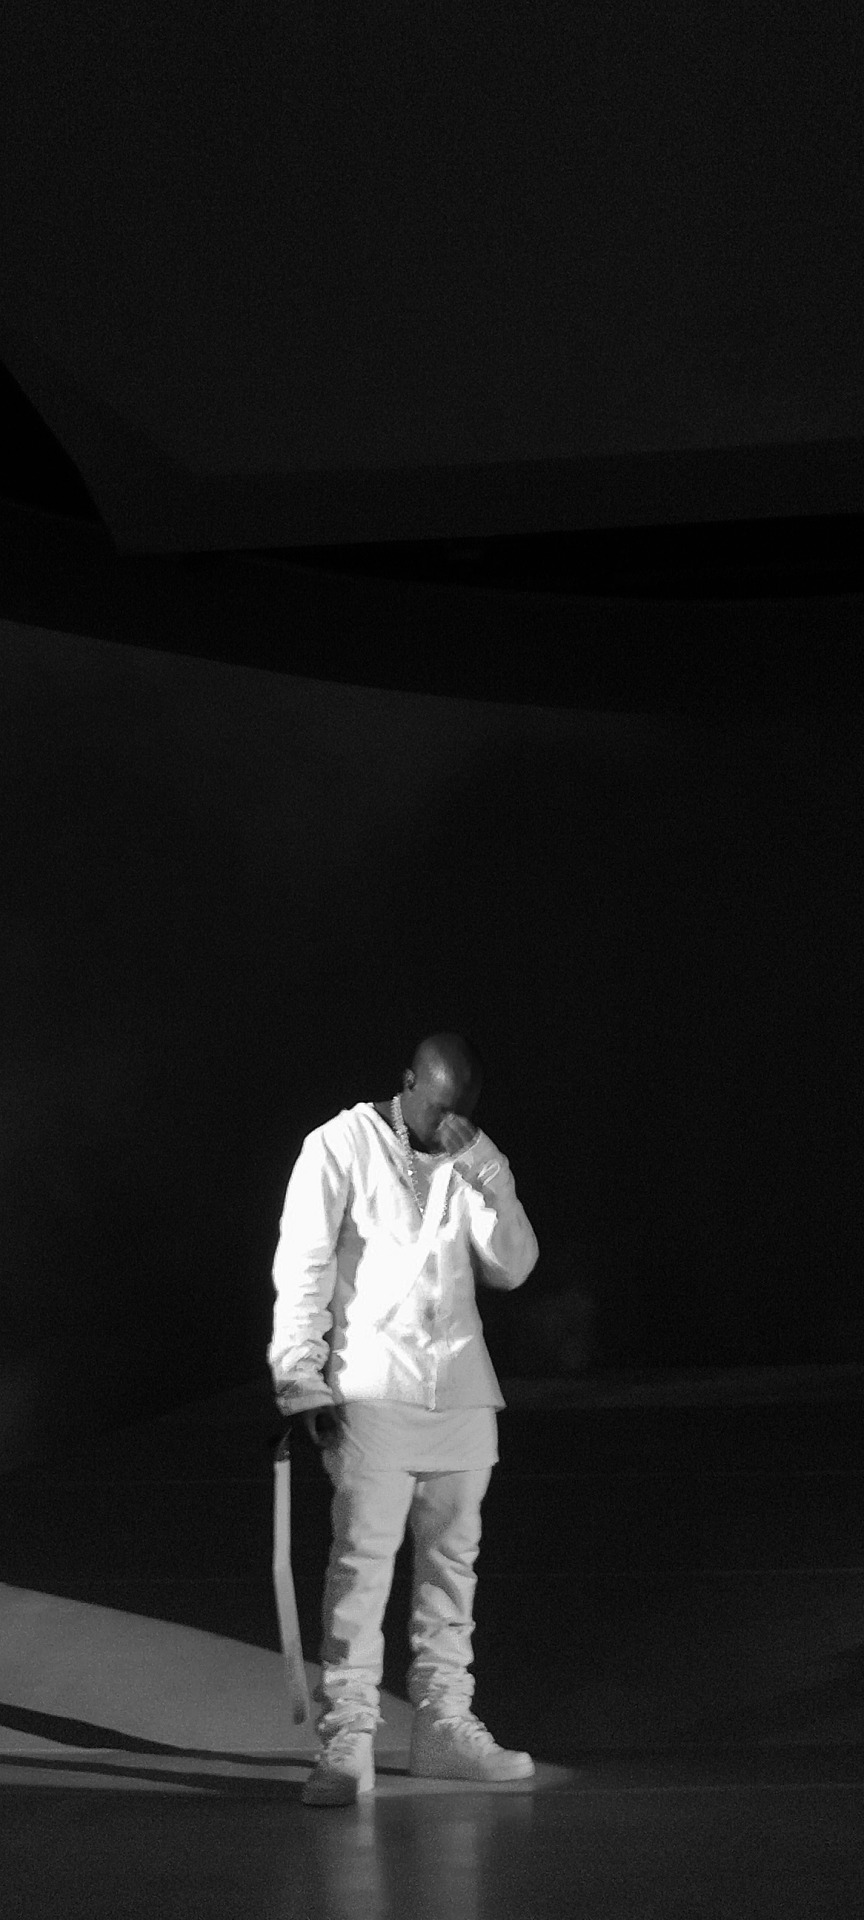 KanYe West at the Hammersmith Apollo (24/02/12)